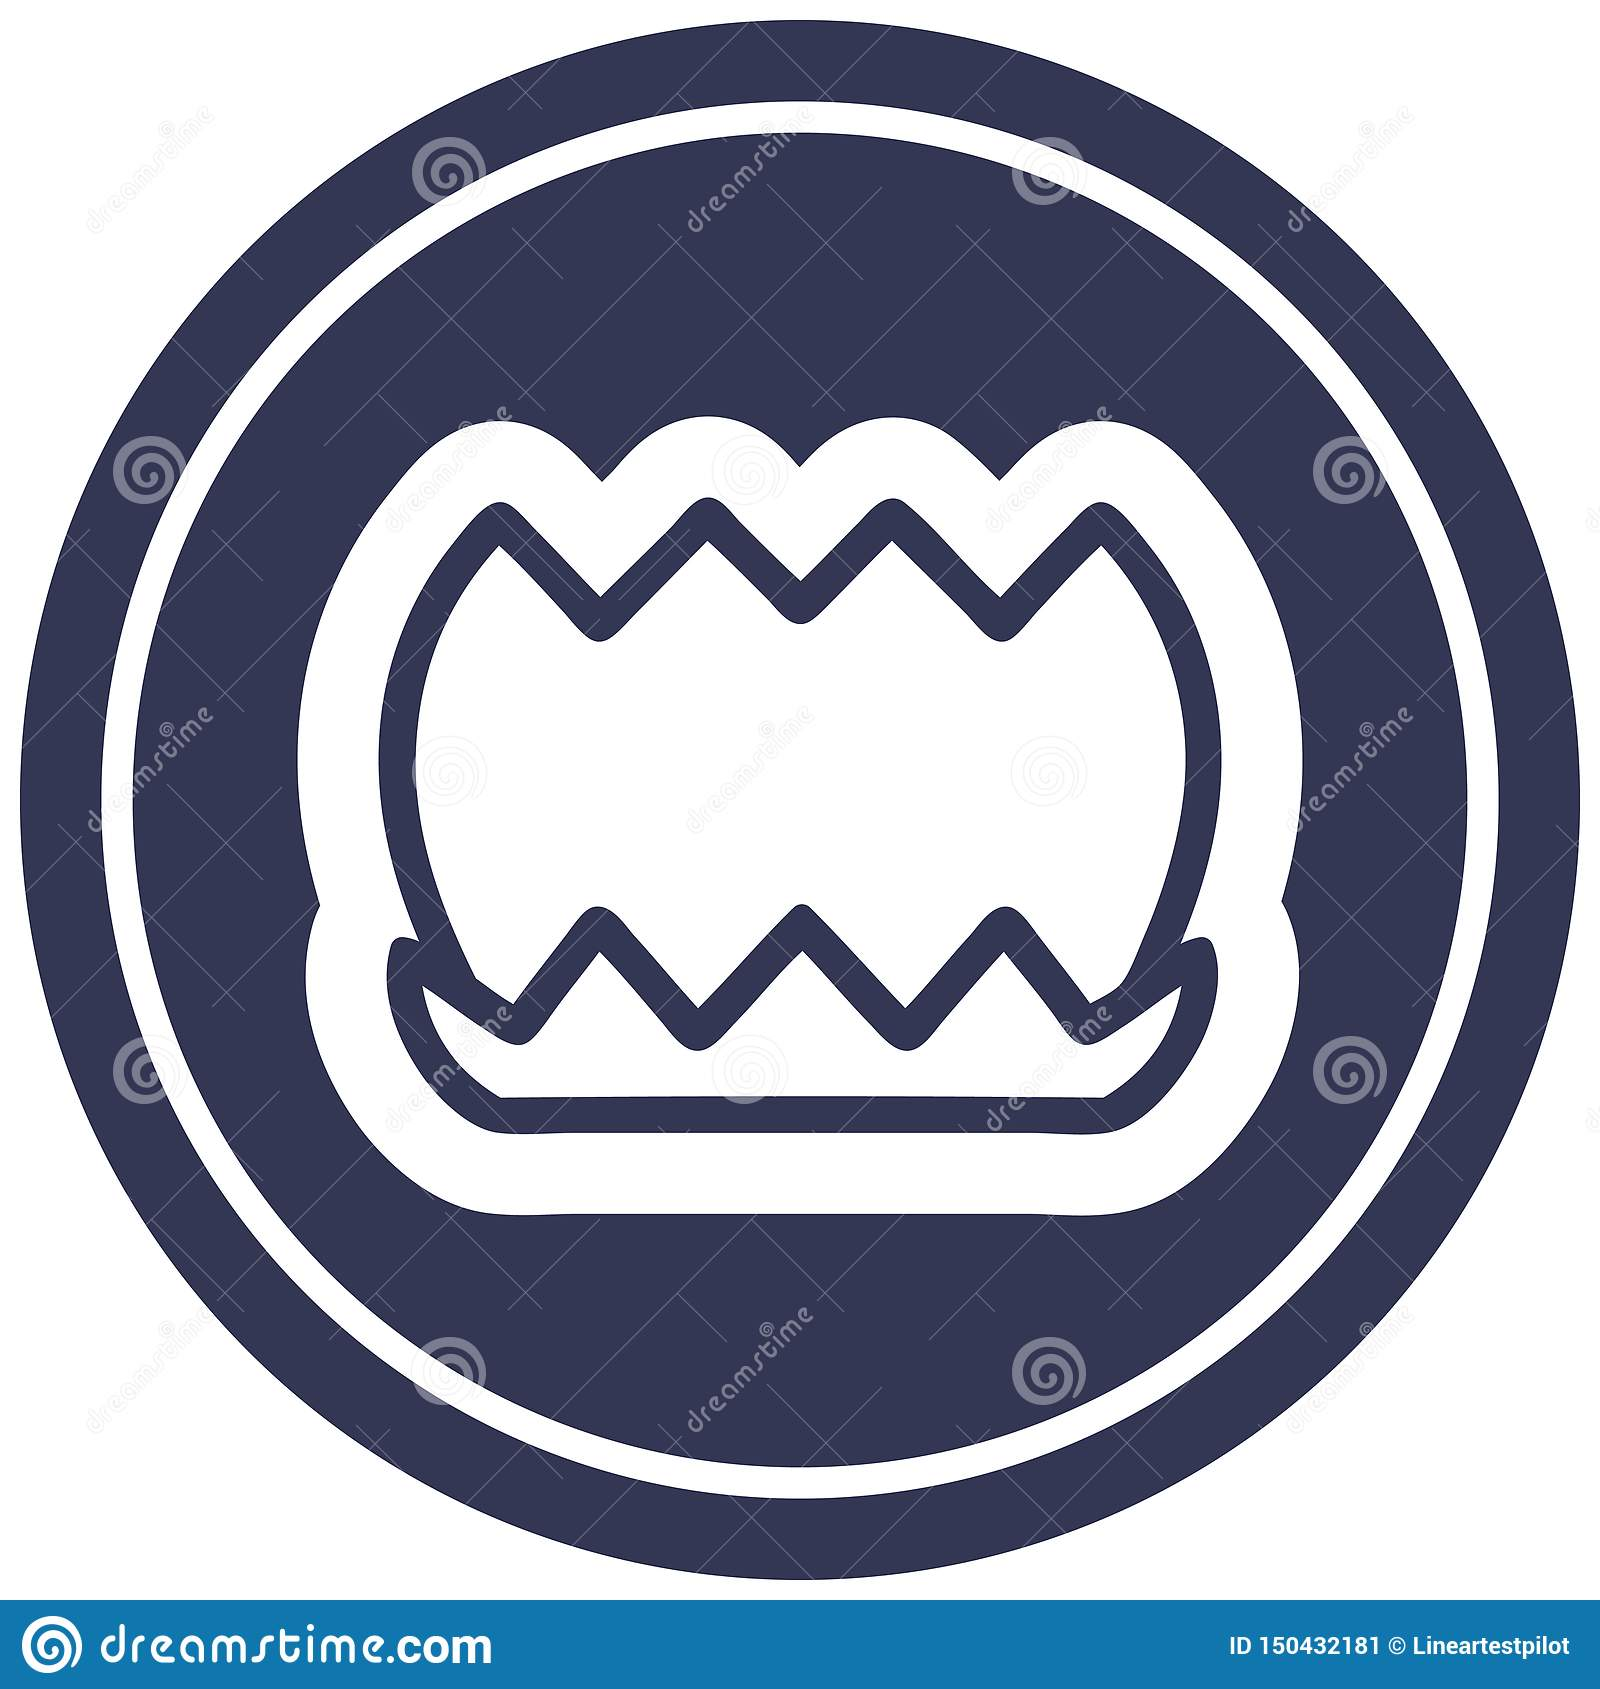 lotus flower circular icon symbol